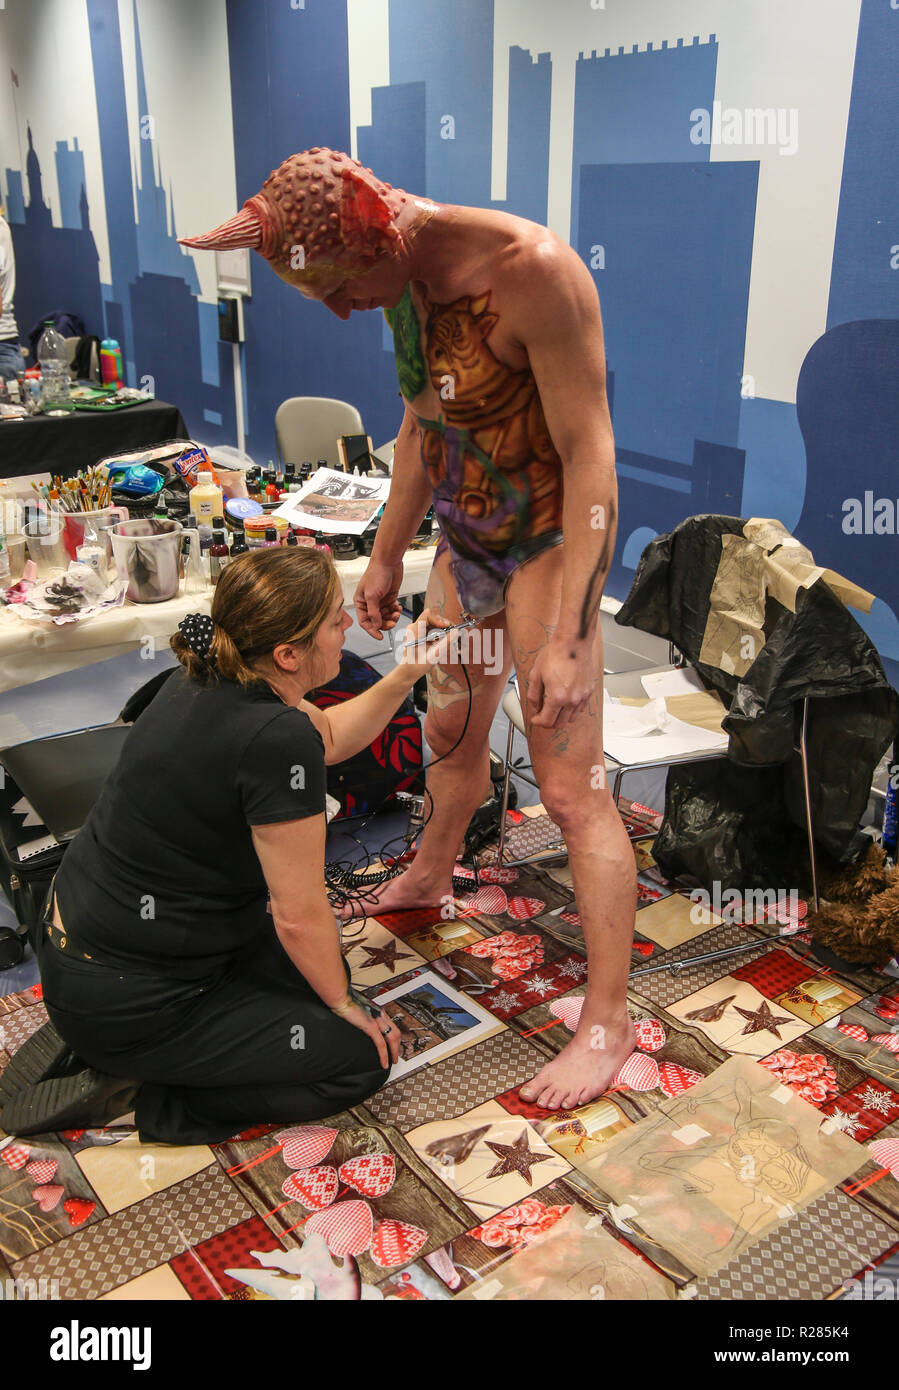 Birmingham UK 17 November 2018 Body Painters and models getting ready for the final showdown at the Body Art 2018@Paul Quezada-Neiman/Alamy Live News - Stock Image